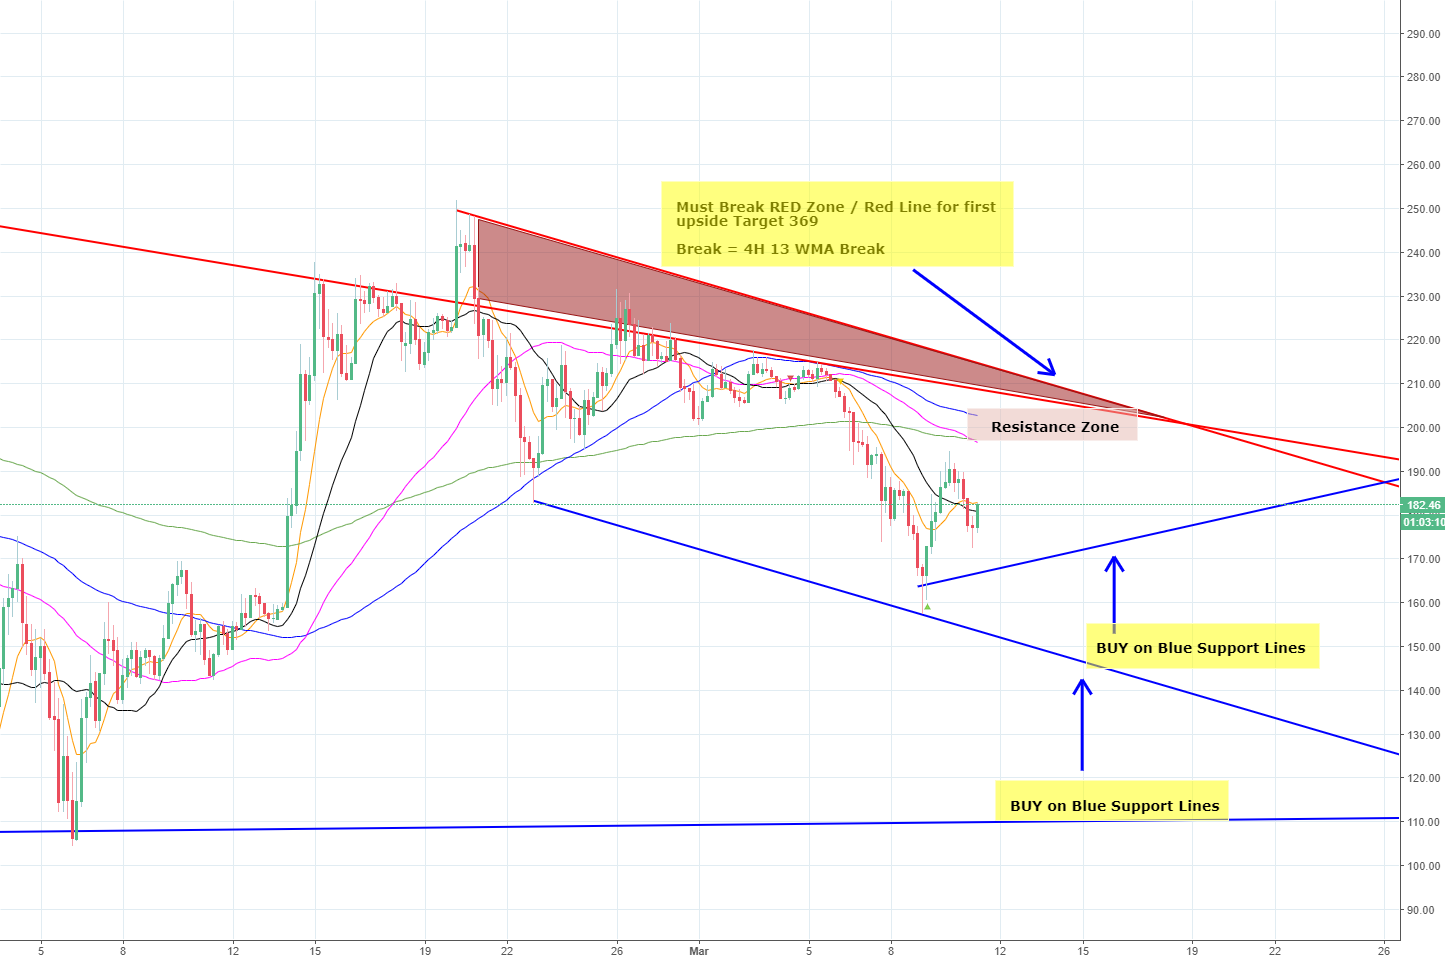 LTCUSD - BUY and Add on Dips Zones / Breakout Zones